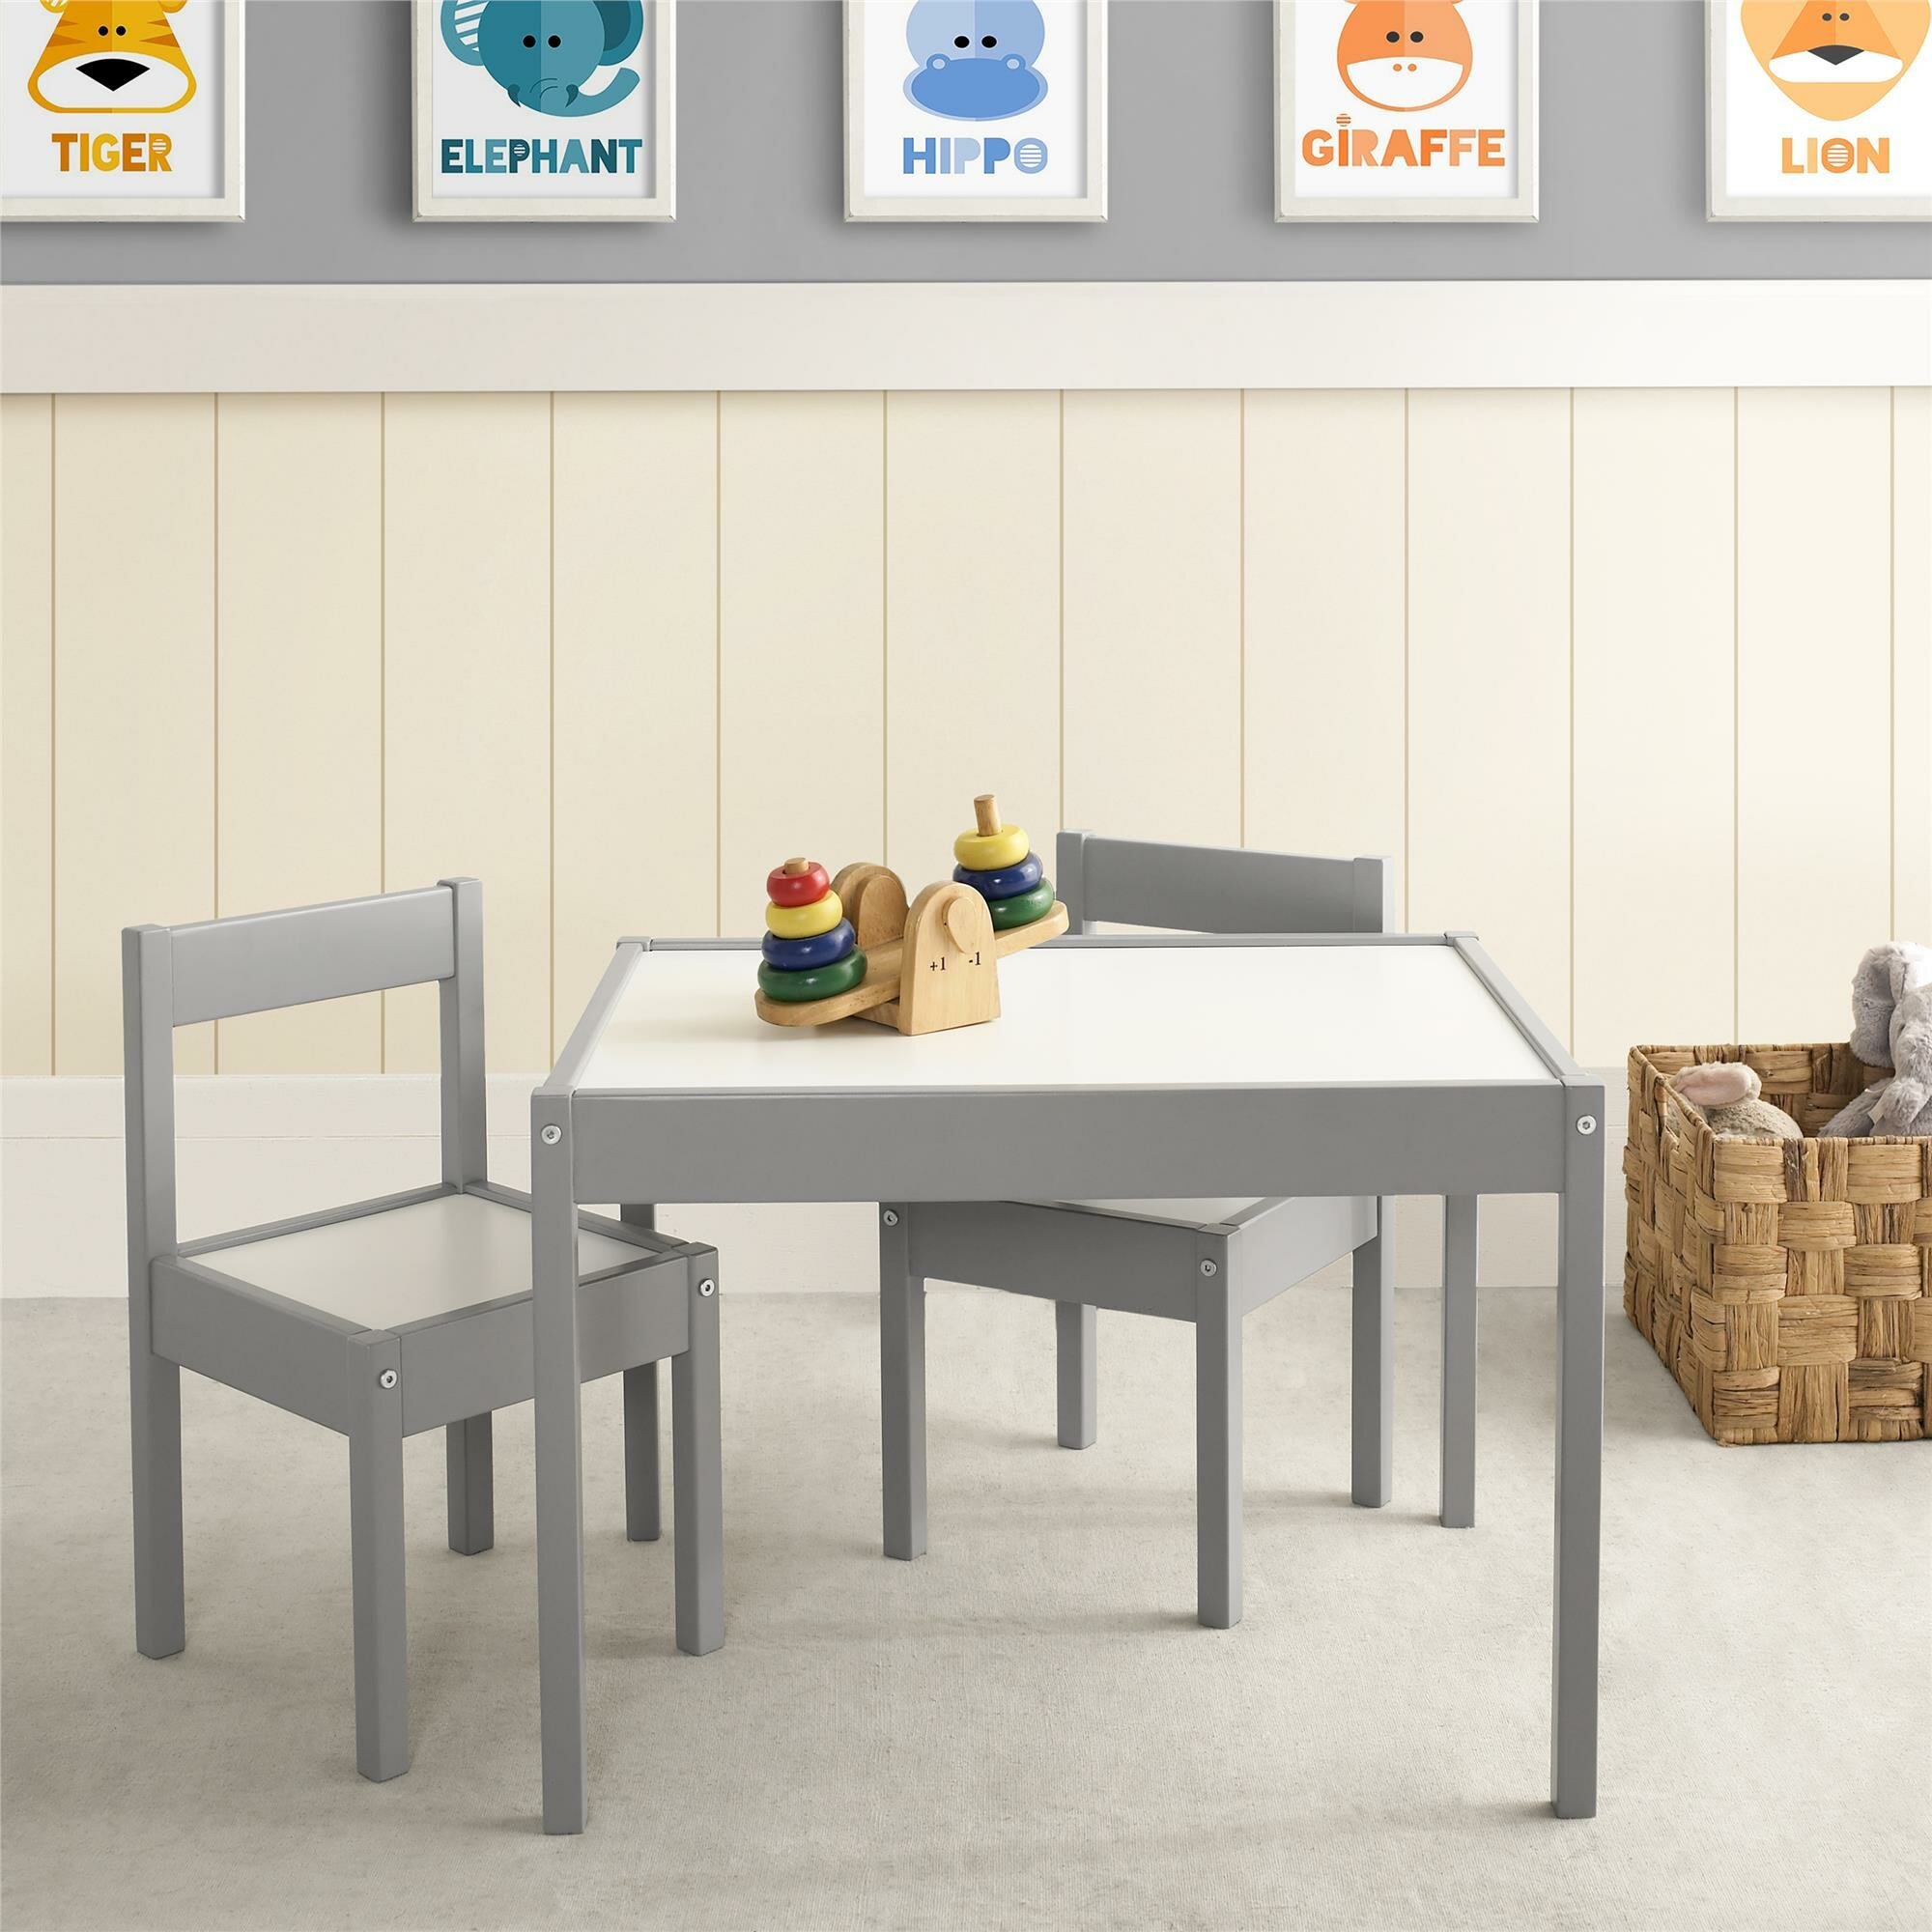 Viv rae miriam 3 piece rectangular table and chair set for Grey childrens chair